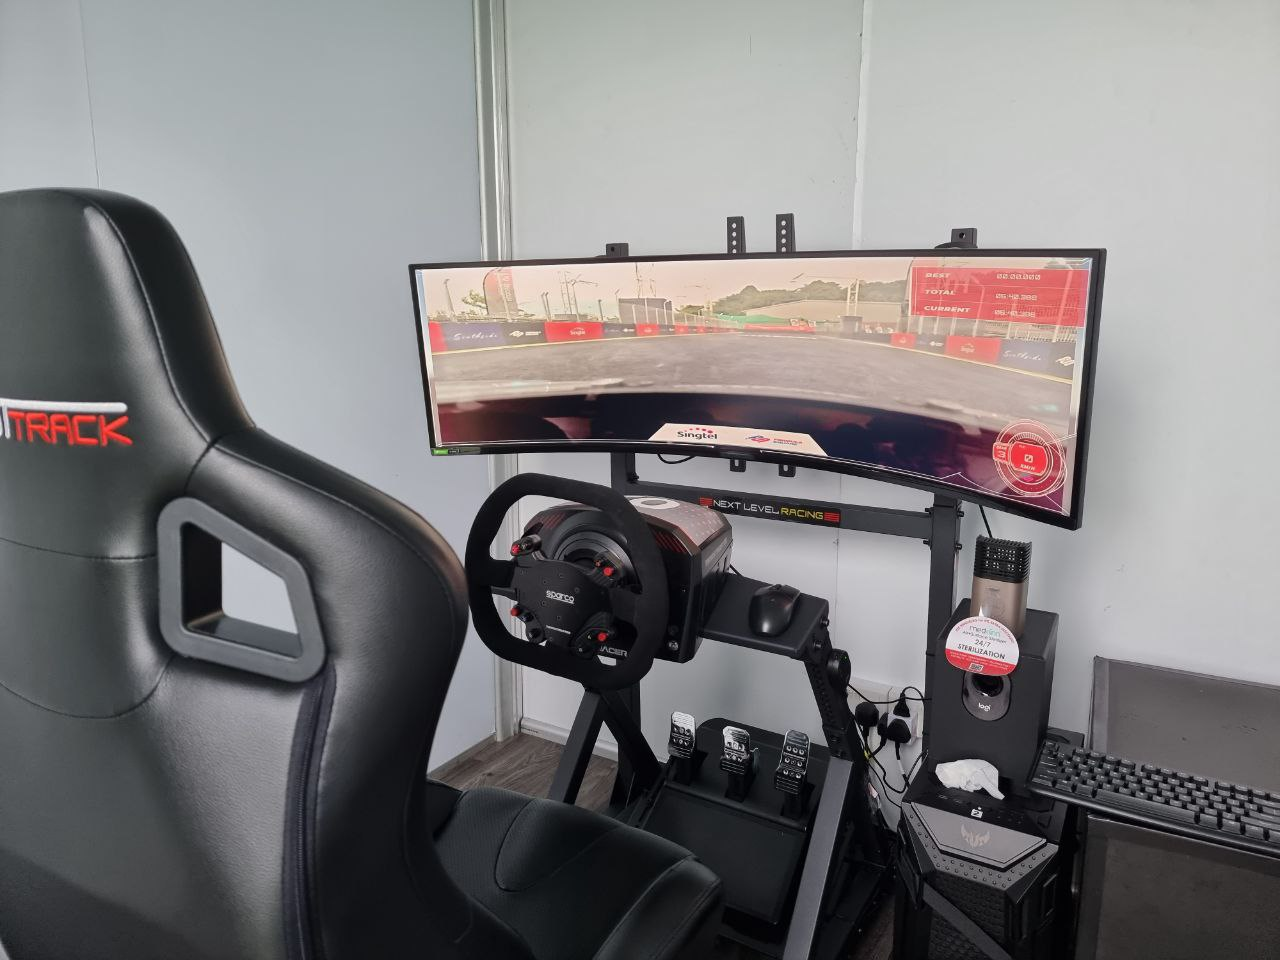 Image of the control booth